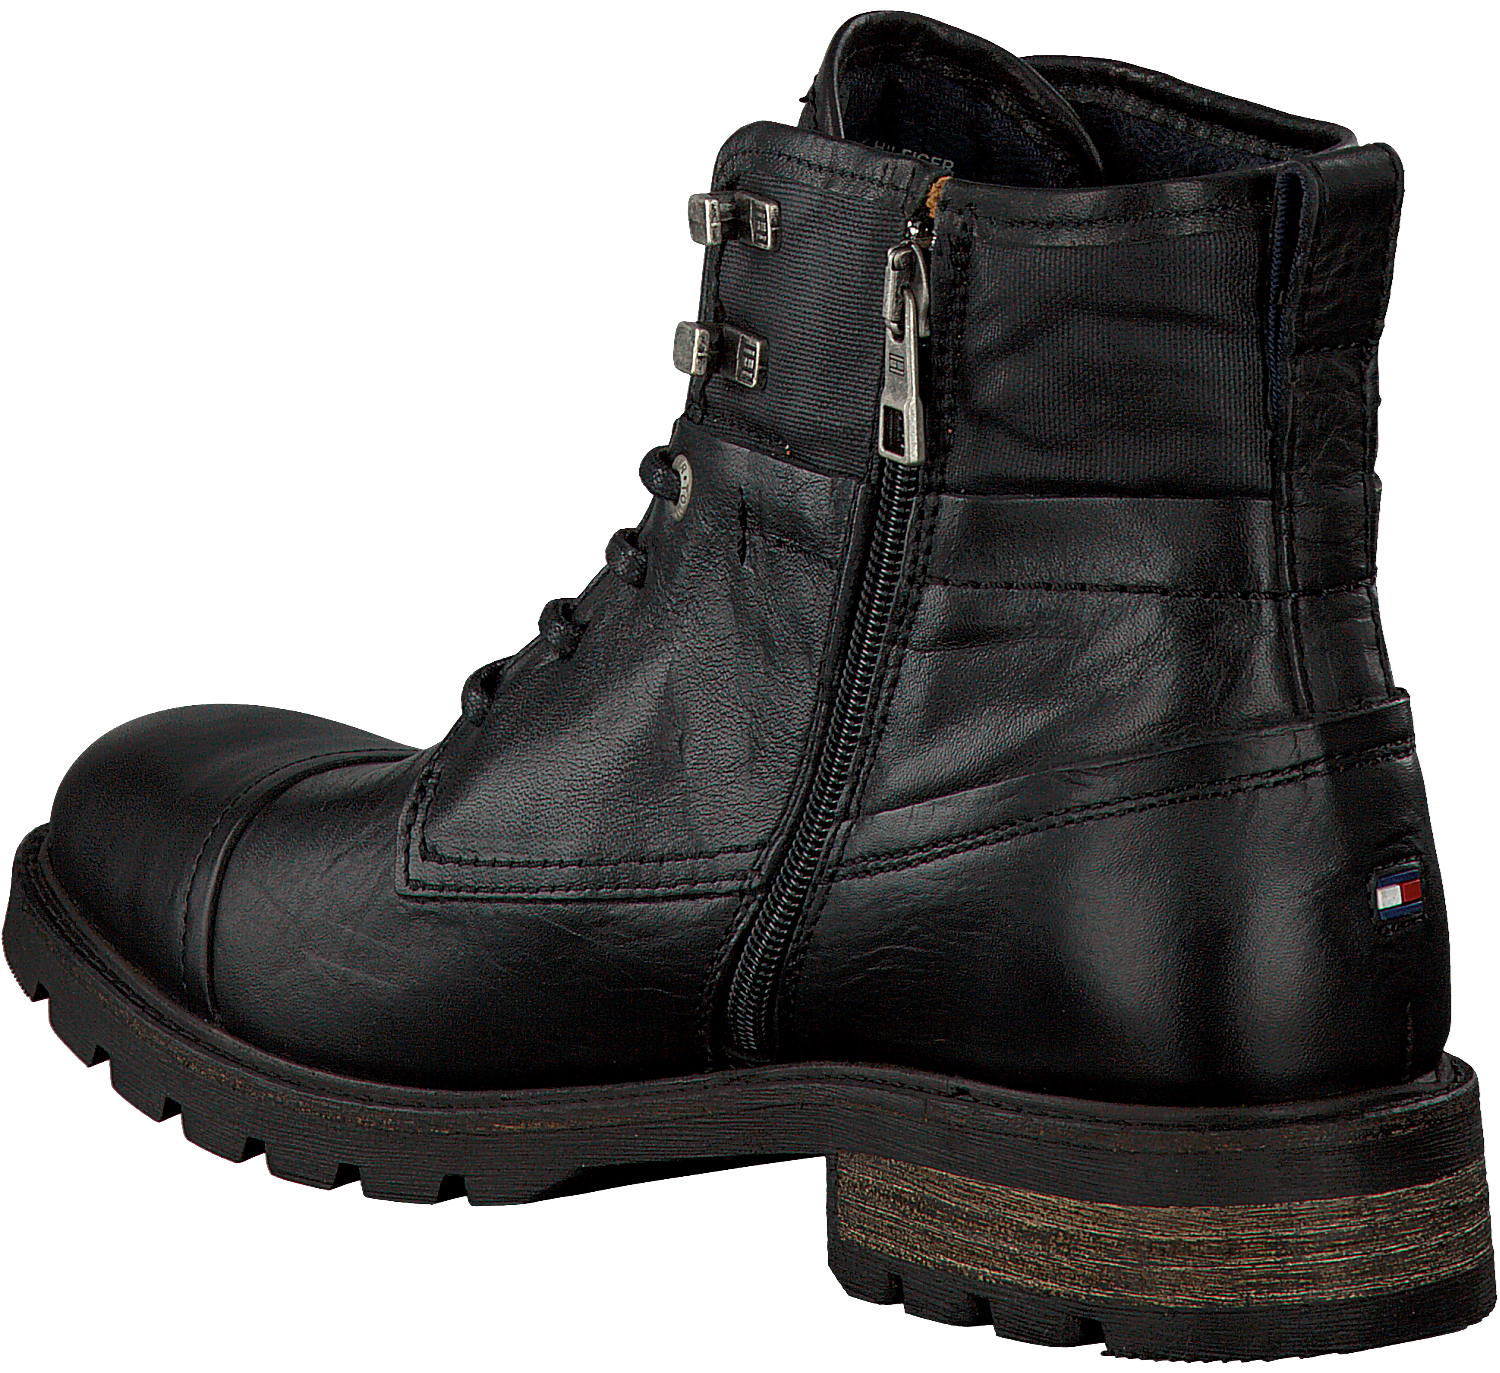 Schwarze TOMMY HILFIGER Ankle Boots CURTIS 13A. TOMMY HILFIGER. -20%.  Previous 9025271dc0